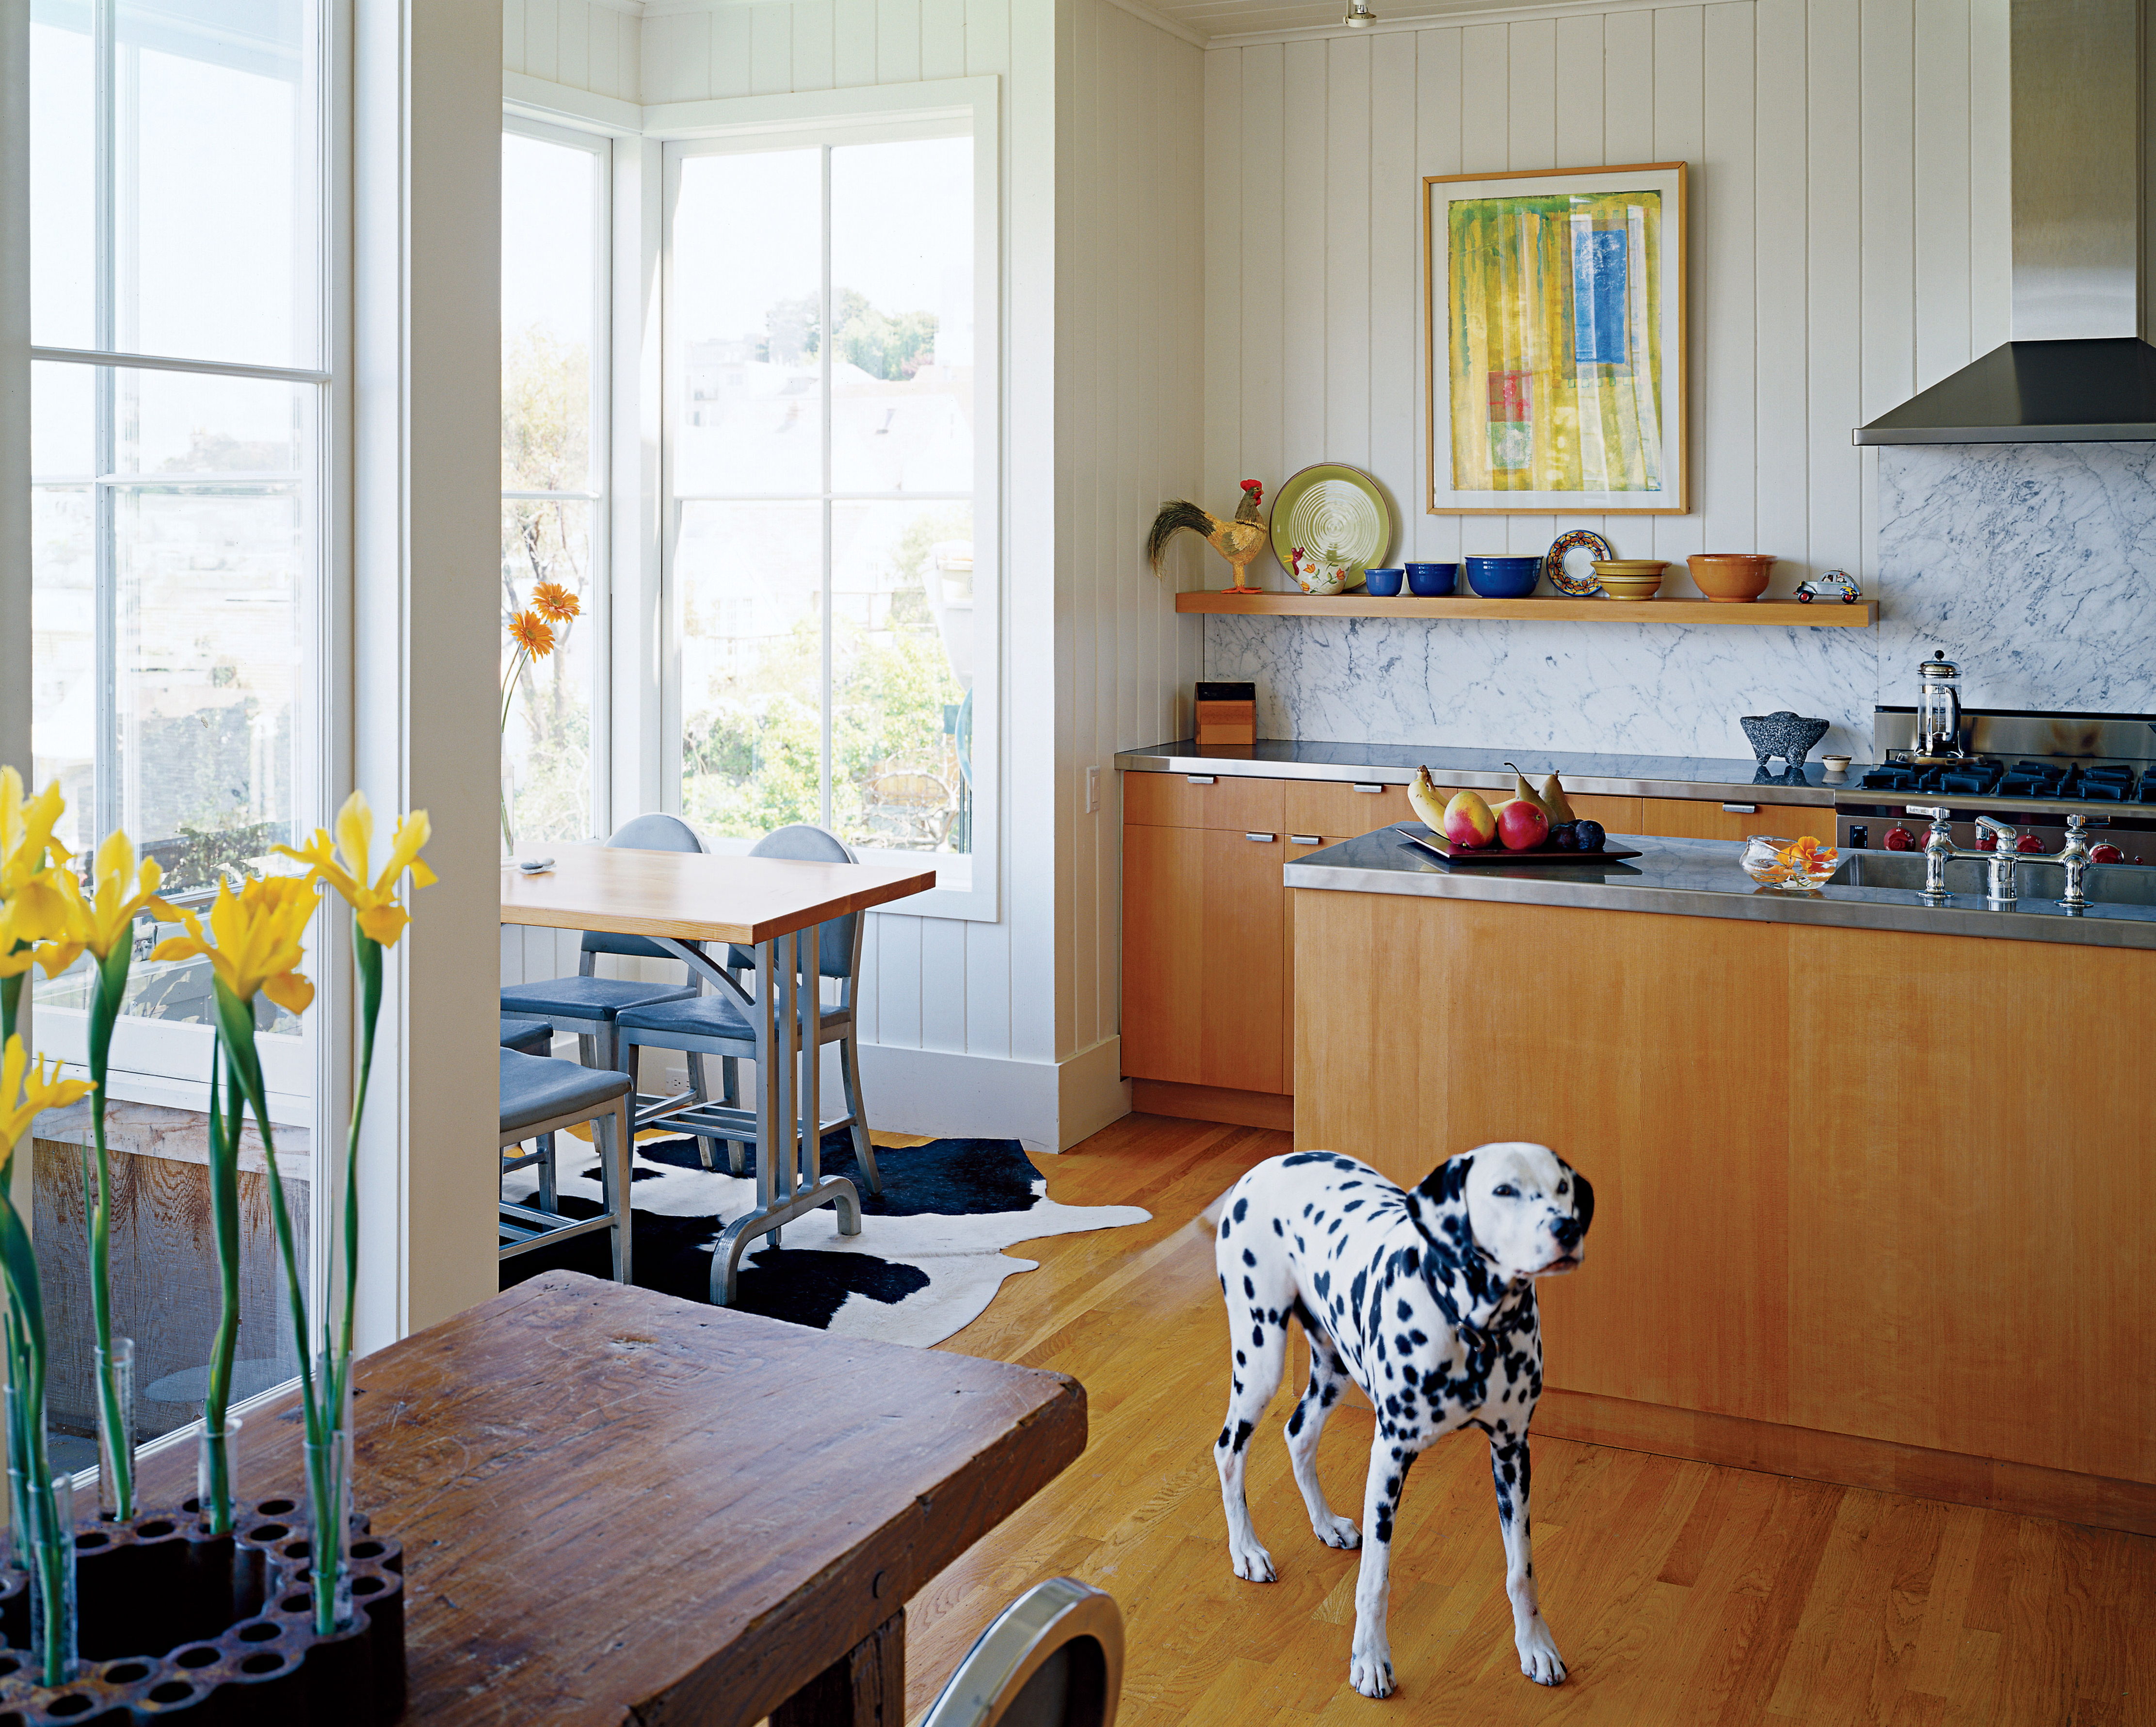 New Kitchen Opens to Airy Living Spaces